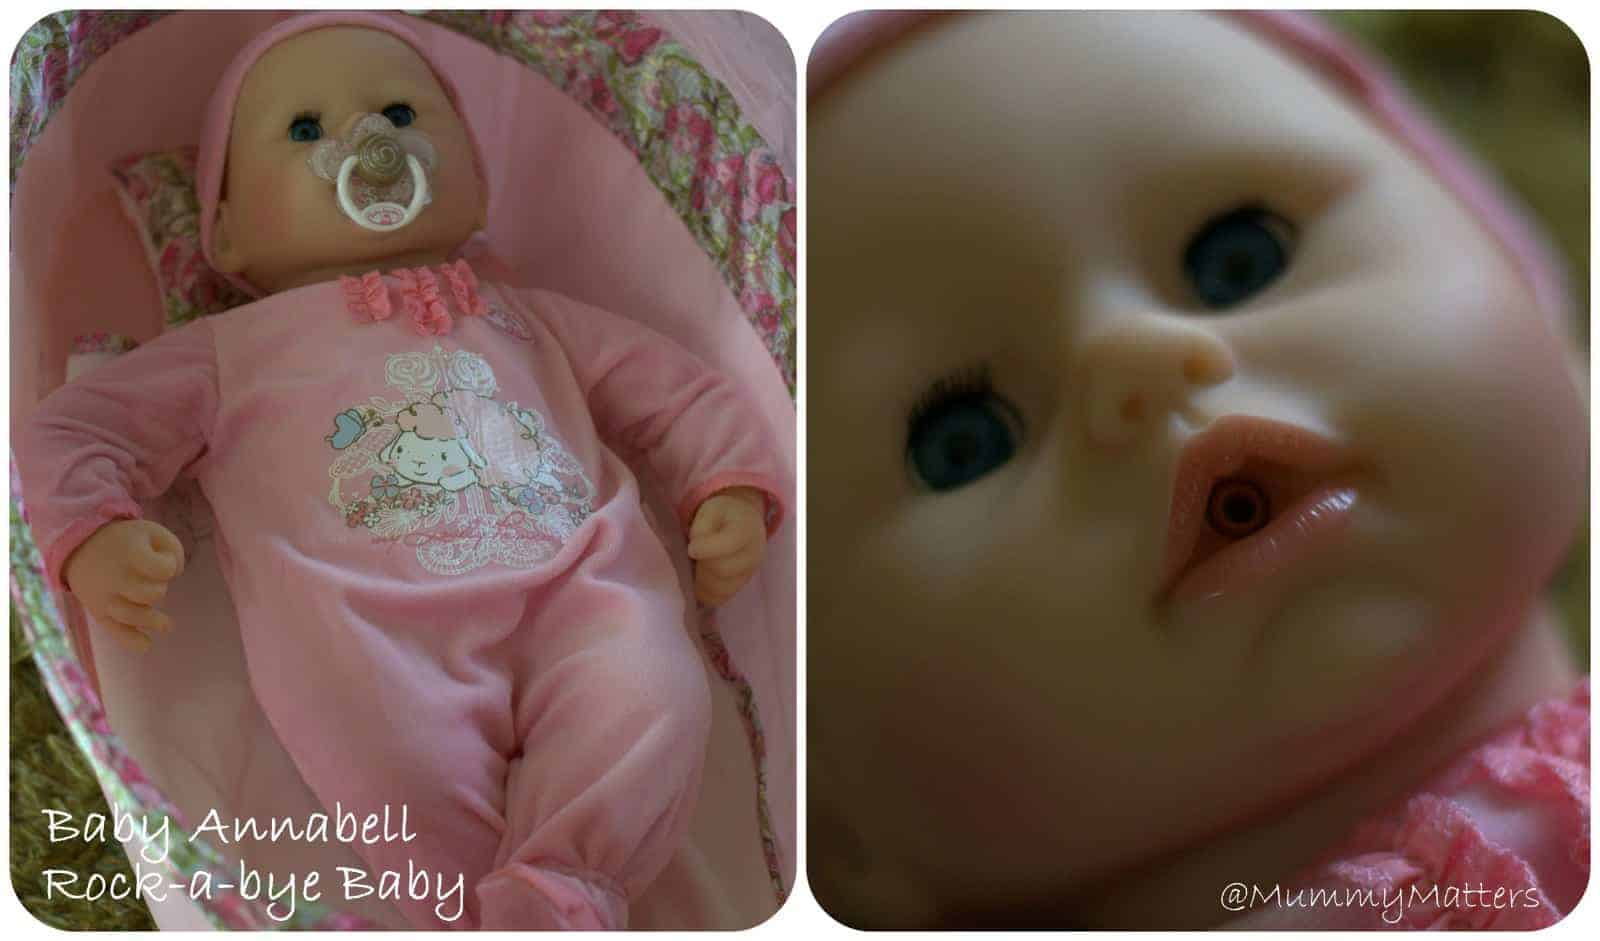 Baby Annabell Rock-a-bye Baby